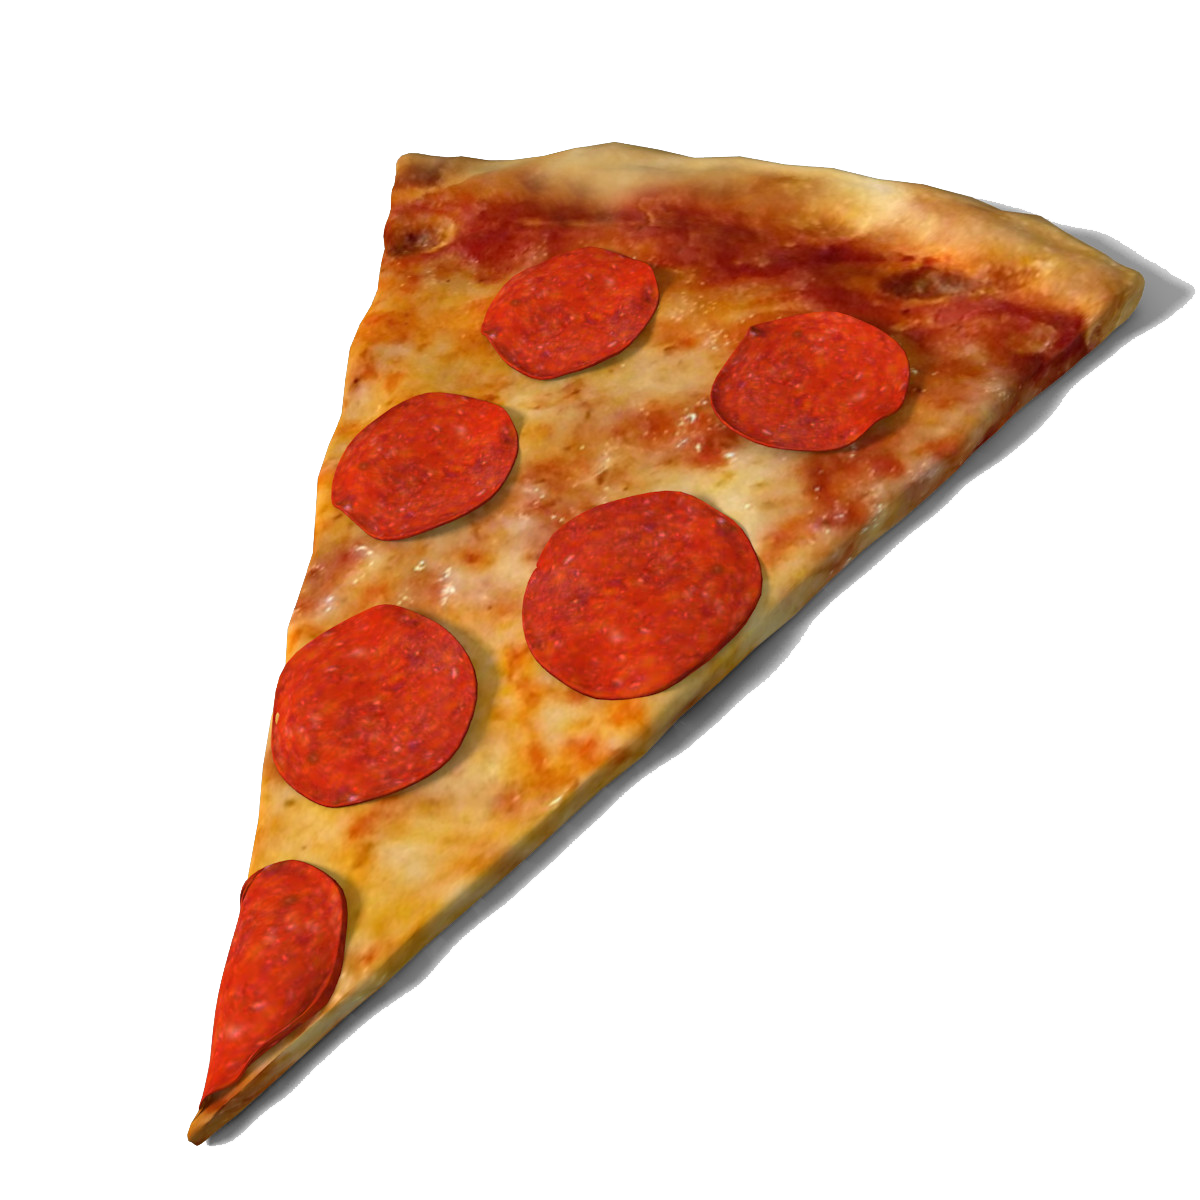 Free PNG Pizza Slice - 76981